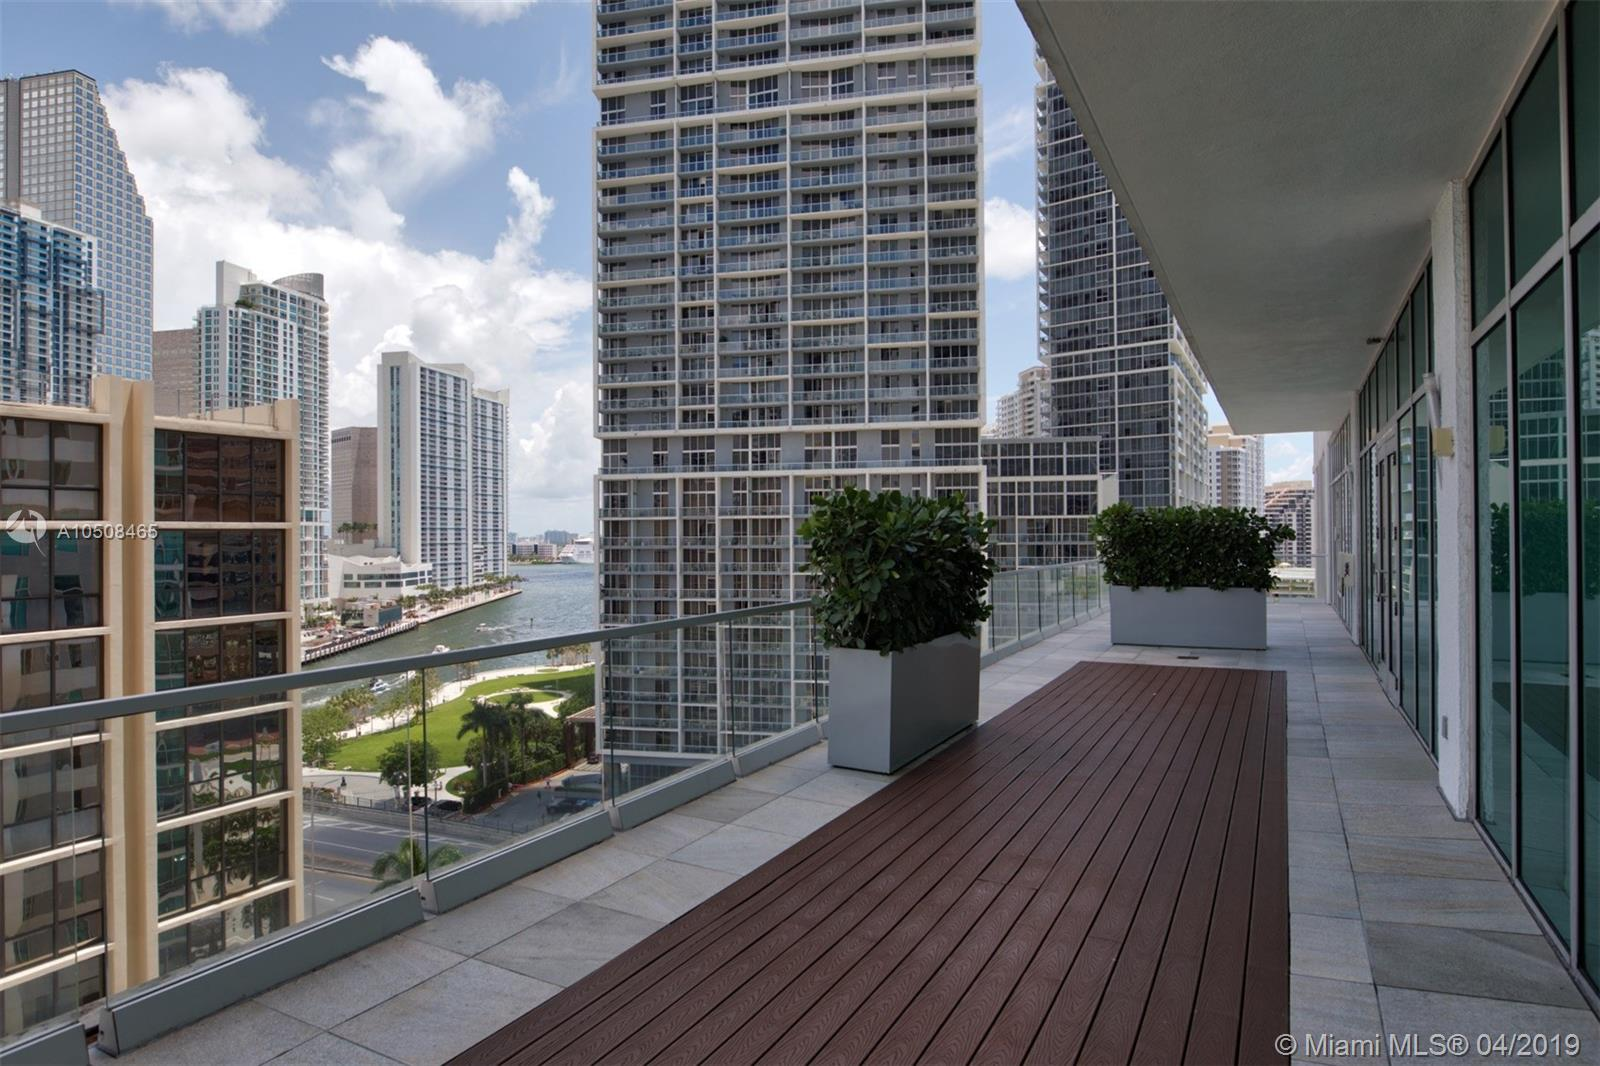 500 Brickell Avenue and 55 SE 6 Street, Miami, FL 33131, 500 Brickell #1801, Brickell, Miami A10508465 image #7